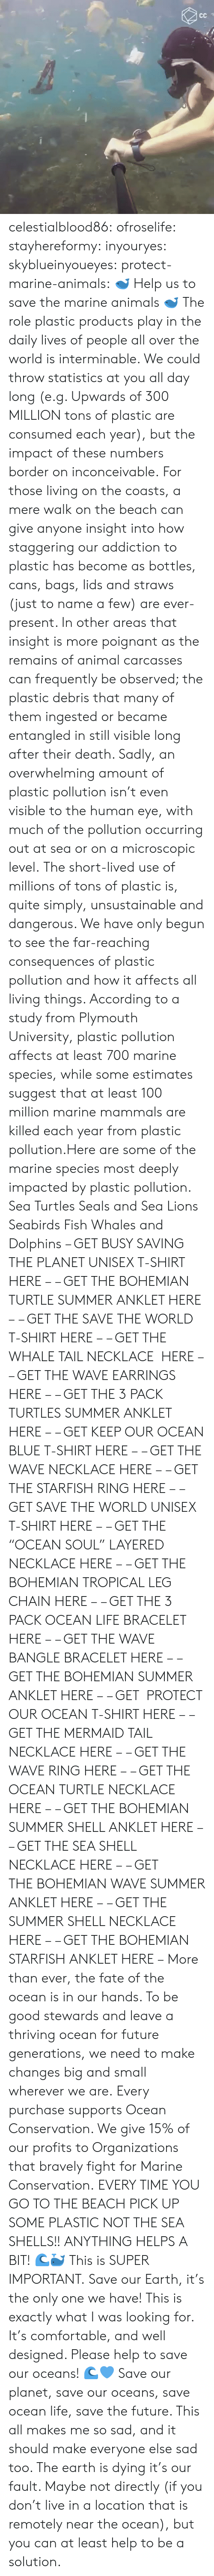 "Conservation: celestialblood86:  ofroselife: stayhereformy:  inyouryes:  skyblueinyoueyes:  protect-marine-animals:  🐋 Help us to save the marine animals 🐋 The role plastic products play in the daily lives of people all over the world is interminable. We could throw statistics at you all day long (e.g. Upwards of 300 MILLION tons of plastic are consumed each year), but the impact of these numbers border on inconceivable. For those living on the coasts, a mere walk on the beach can give anyone insight into how staggering our addiction to plastic has become as bottles, cans, bags, lids and straws (just to name a few) are ever-present. In other areas that insight is more poignant as the remains of animal carcasses can frequently be observed; the plastic debris that many of them ingested or became entangled in still visible long after their death. Sadly, an overwhelming amount of plastic pollution isn't even visible to the human eye, with much of the pollution occurring out at sea or on a microscopic level. The short-lived use of millions of tons of plastic is, quite simply, unsustainable and dangerous. We have only begun to see the far-reaching consequences of plastic pollution and how it affects all living things. According to a study from Plymouth University, plastic pollution affects at least 700 marine species, while some estimates suggest that at least 100 million marine mammals are killed each year from plastic pollution.Here are some of the marine species most deeply impacted by plastic pollution. Sea Turtles Seals and Sea Lions Seabirds Fish Whales and Dolphins – GET BUSY SAVING THE PLANET UNISEX T-SHIRT HERE – – GET THE BOHEMIAN TURTLE SUMMER ANKLET HERE – – GET THE SAVE THE WORLD T-SHIRT HERE – – GET THE WHALE TAIL NECKLACE  HERE – – GET THE WAVE EARRINGS HERE – – GET THE 3 PACK TURTLES SUMMER ANKLET HERE – – GET KEEP OUR OCEAN BLUE T-SHIRT HERE – – GET THE WAVE NECKLACE HERE – – GET THE STARFISH RING HERE – – GET SAVE THE WORLD UNISEX T-SHIRT HERE – – GET THE ""OCEAN SOUL"" LAYERED NECKLACE HERE – – GET THE BOHEMIAN TROPICAL LEG CHAIN HERE – – GET THE 3 PACK OCEAN LIFE BRACELET HERE – – GET THE WAVE BANGLE BRACELET HERE – – GET THE BOHEMIAN SUMMER ANKLET HERE – – GET  PROTECT OUR OCEAN T-SHIRT HERE – – GET THE MERMAID TAIL NECKLACE HERE – – GET THE WAVE RING HERE – – GET THE OCEAN TURTLE NECKLACE HERE – – GET THE BOHEMIAN SUMMER SHELL ANKLET HERE – – GET THE SEA SHELL NECKLACE HERE – – GET THE BOHEMIAN WAVE SUMMER ANKLET HERE – – GET THE SUMMER SHELL NECKLACE HERE – – GET THE BOHEMIAN STARFISH ANKLET HERE – More than ever, the fate of the ocean is in our hands. To be good stewards and leave a thriving ocean for future generations, we need to make changes big and small wherever we are. Every purchase supports Ocean Conservation. We give 15% of our profits to Organizations that bravely fight for Marine Conservation.  EVERY TIME YOU GO TO THE BEACH PICK UP SOME PLASTIC NOT THE SEA SHELLS!! ANYTHING HELPS A BIT! 🌊🐳  This is SUPER IMPORTANT.  Save our Earth, it's the only one we have!  This is exactly what I was looking for. It's comfortable, and well designed. Please help to save our oceans! 🌊💙  Save our planet, save our oceans, save ocean life, save the future. This all makes me so sad, and it should make everyone else sad too. The earth is dying it's our fault. Maybe not directly (if you don't live in a location that is remotely near the ocean), but you can at least help to be a solution."